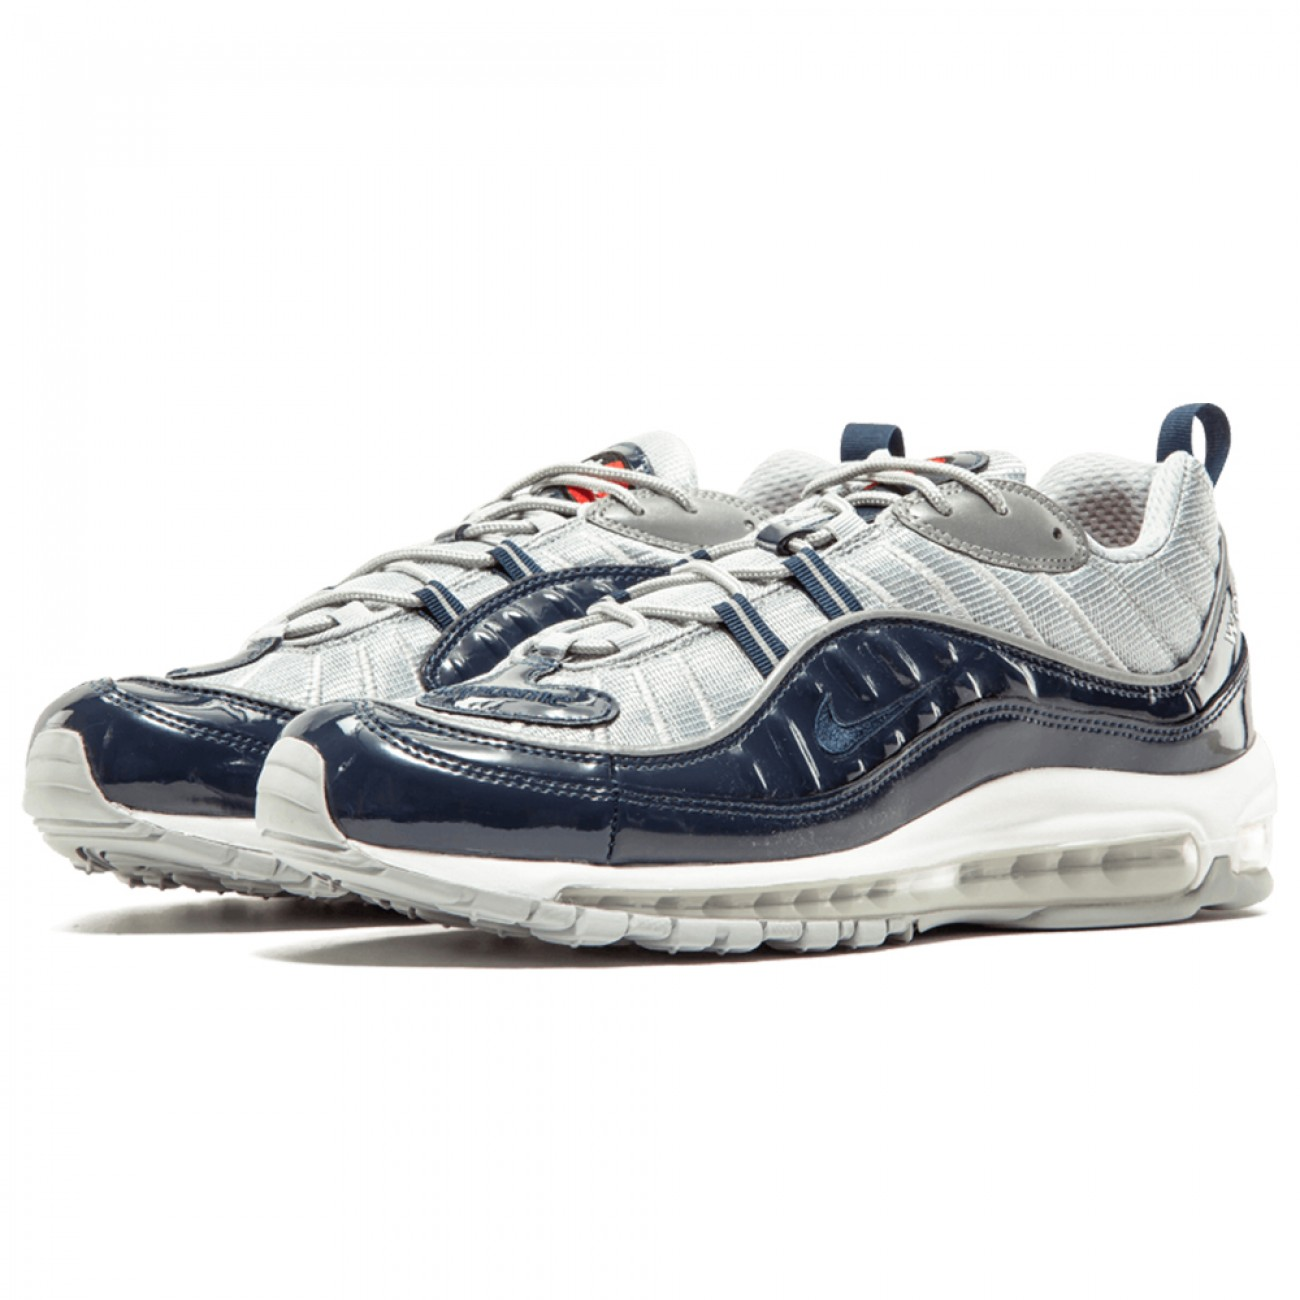 US  80 - SUPREME X NIKE AIR MAX 98 BLUE - www.footarget.com 18e6eb055